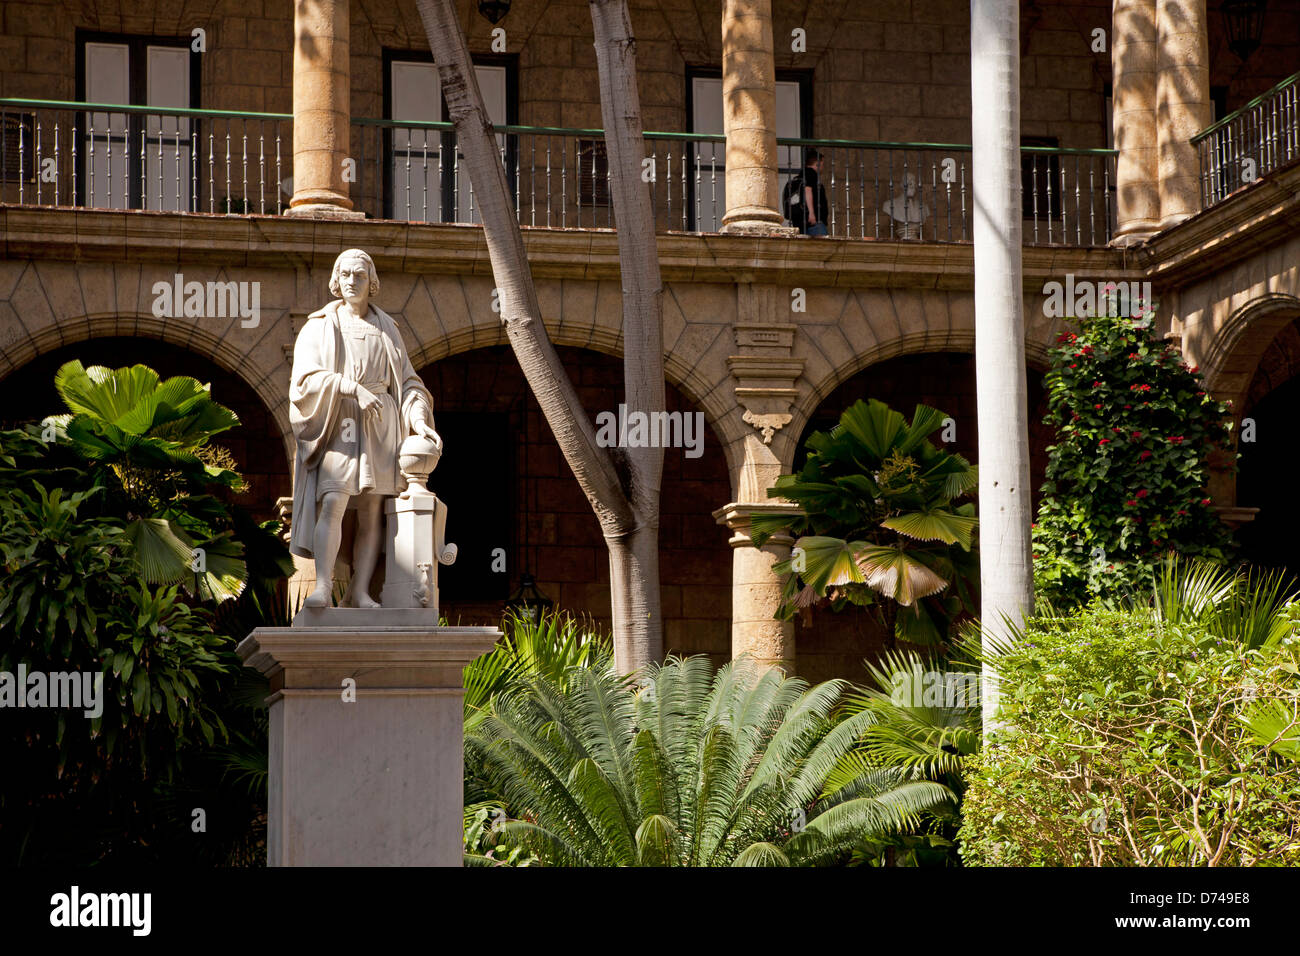 marble statue of Christopher Columbus in the courtyard of the city museum Palacio de los Capitanes Generales in Stock Photo